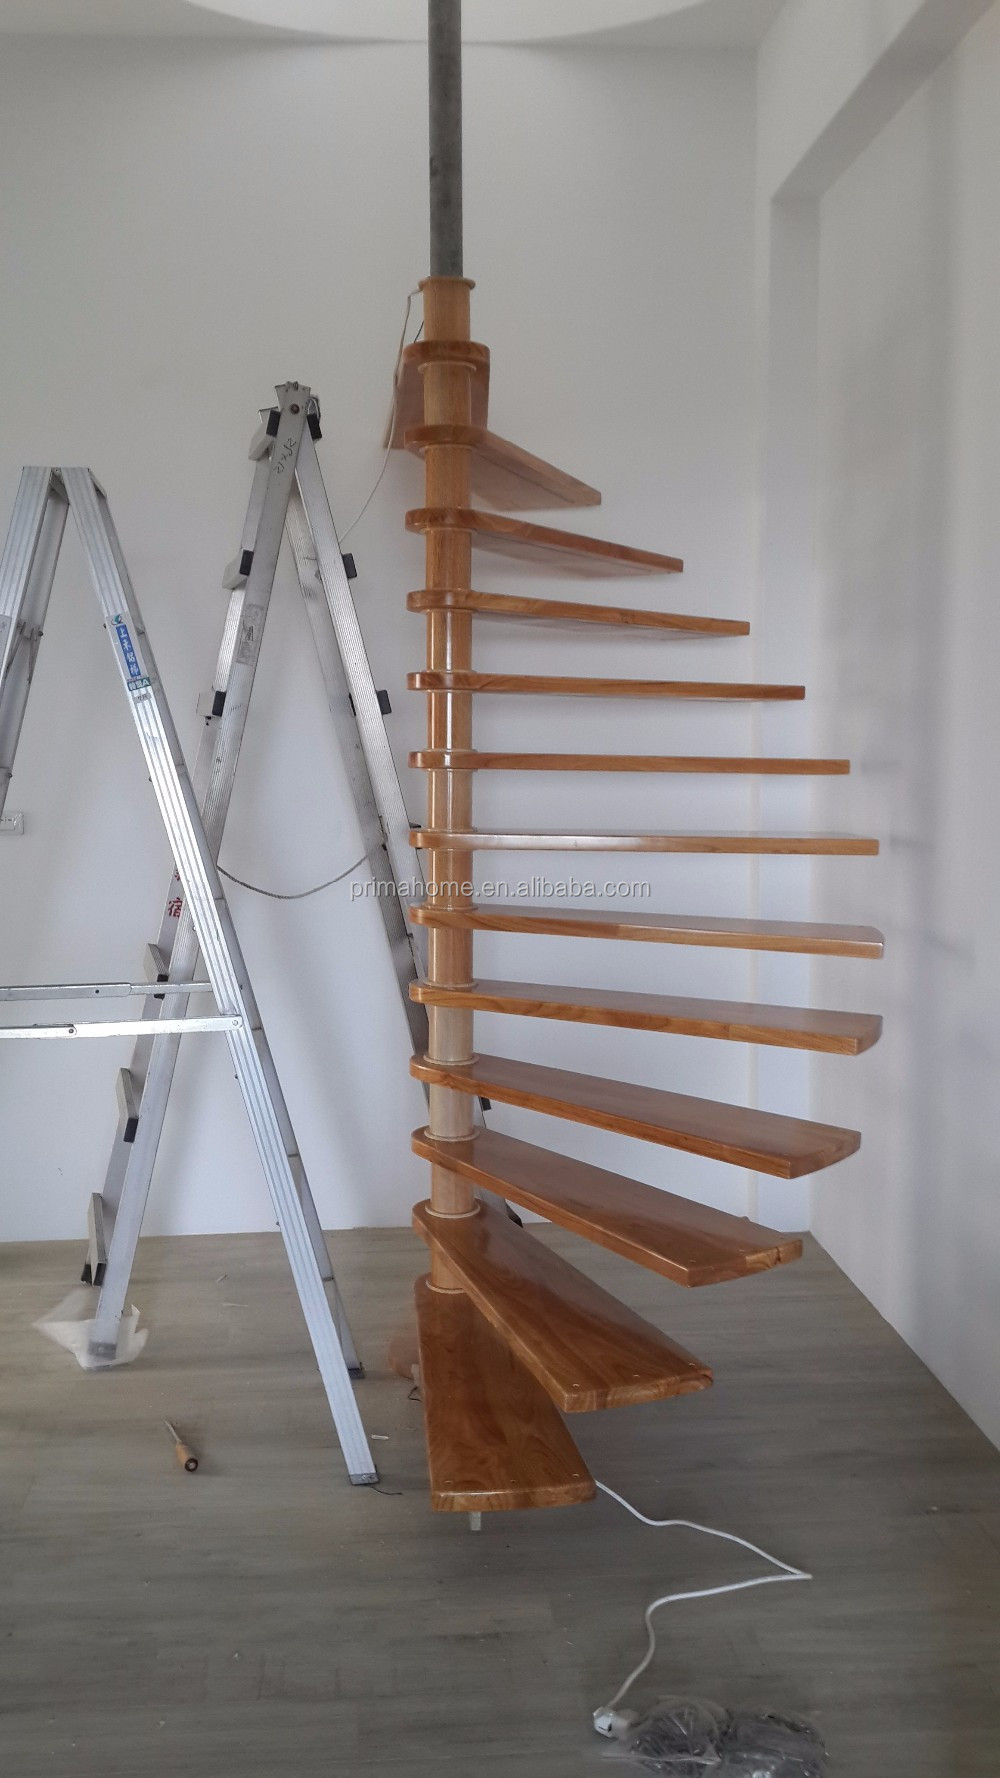 Steel grill design for stairs - Stainless Steel Stairs Grill Designs Used For Indoor Spiral Staircase